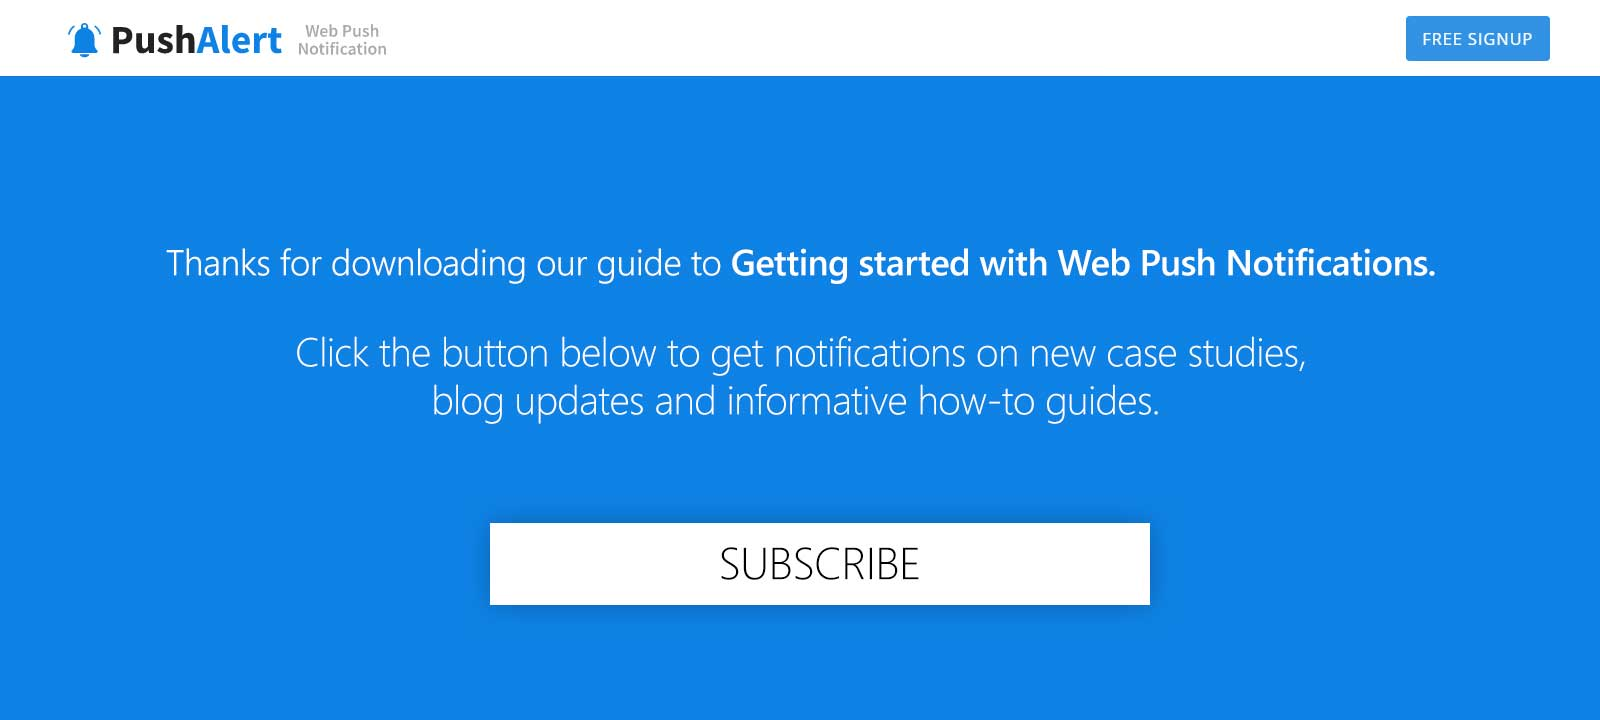 Trigger Push Notification Opt-in With Custom Buttons